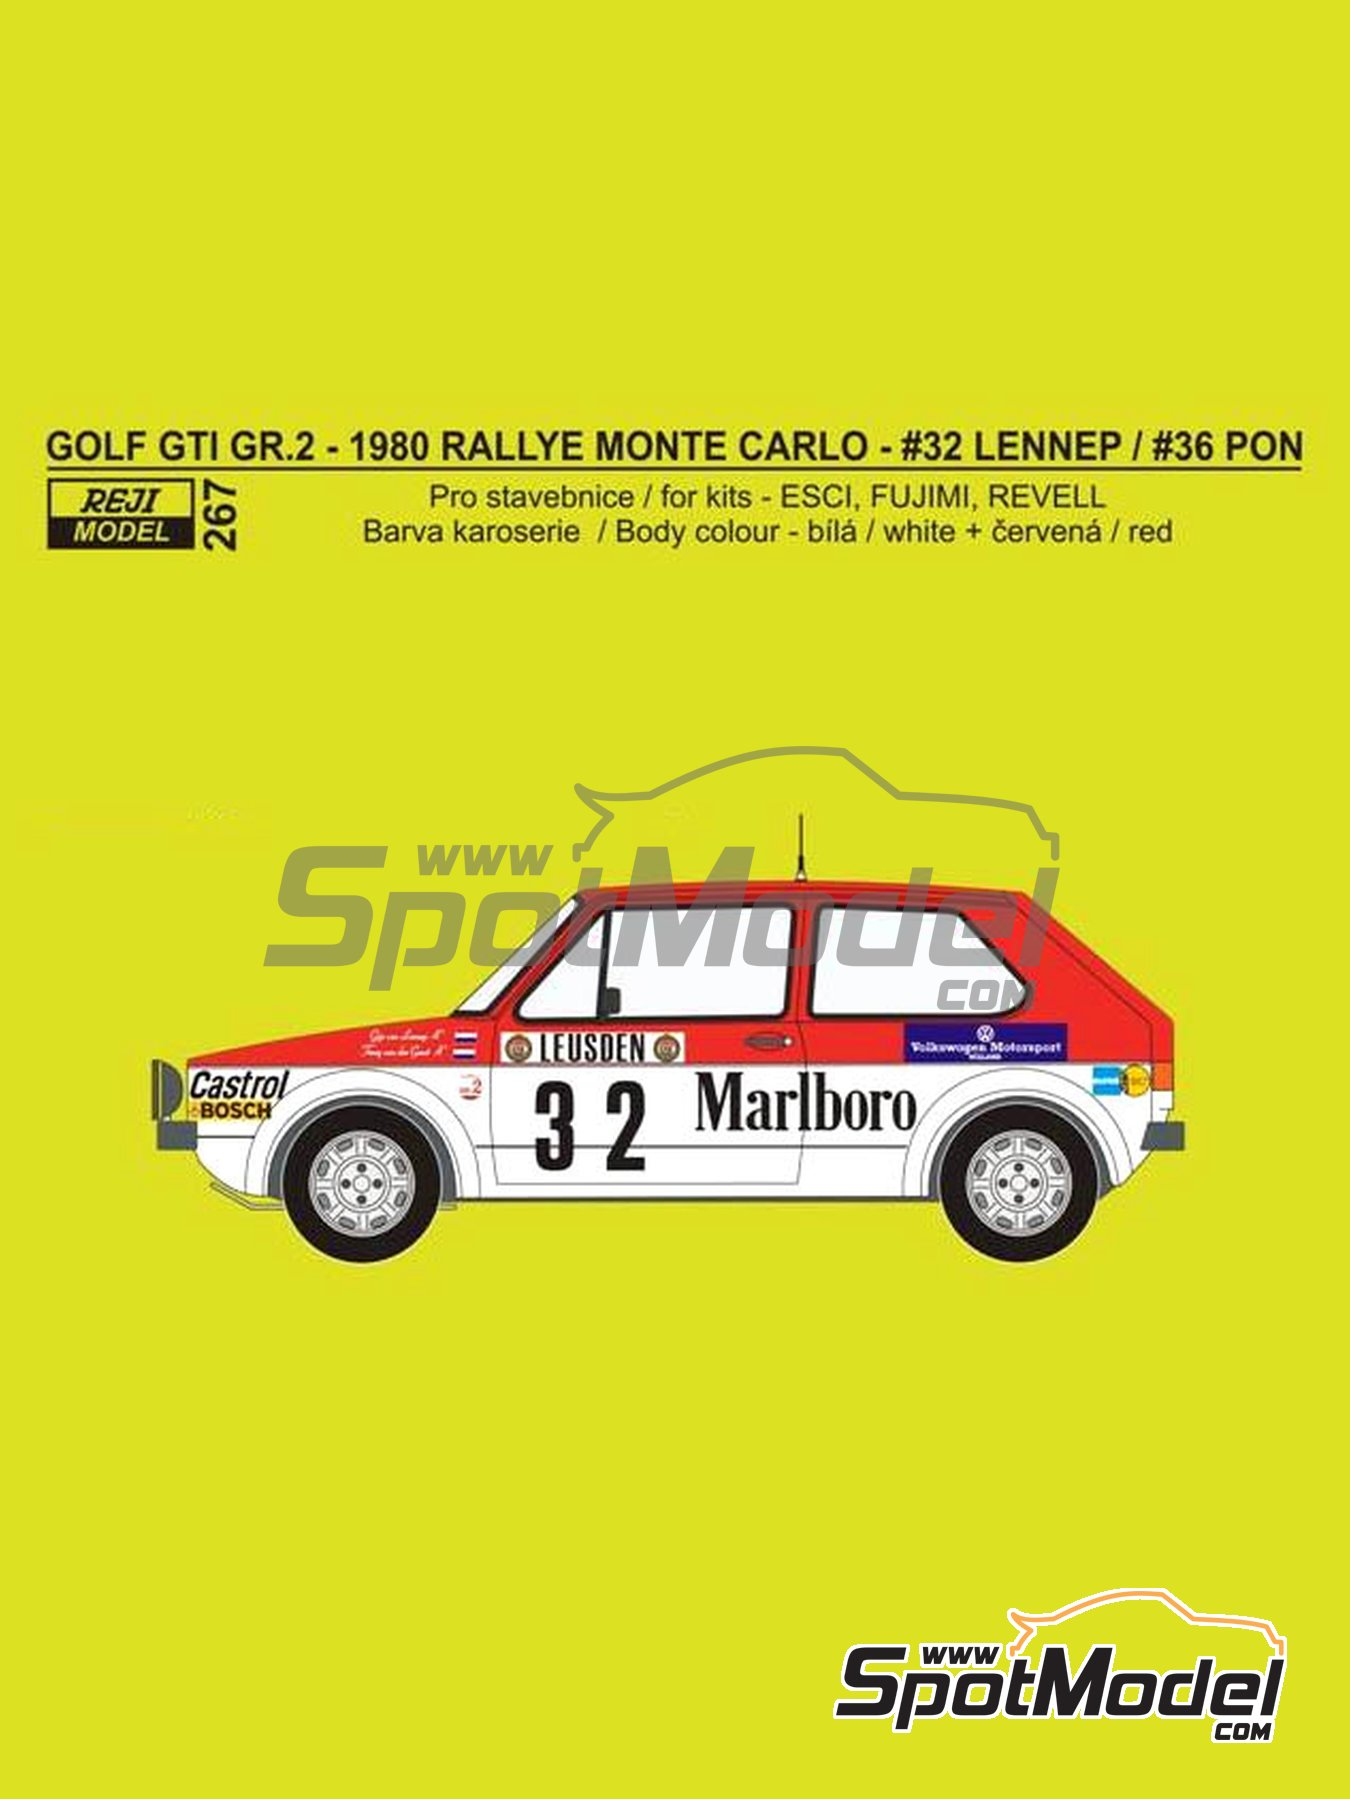 Volkswagen Golf GTI Group 2 - Montecarlo Rally 1980 | Marking / livery in 1/24 scale manufactured by Reji Model (ref. REJI-267) image